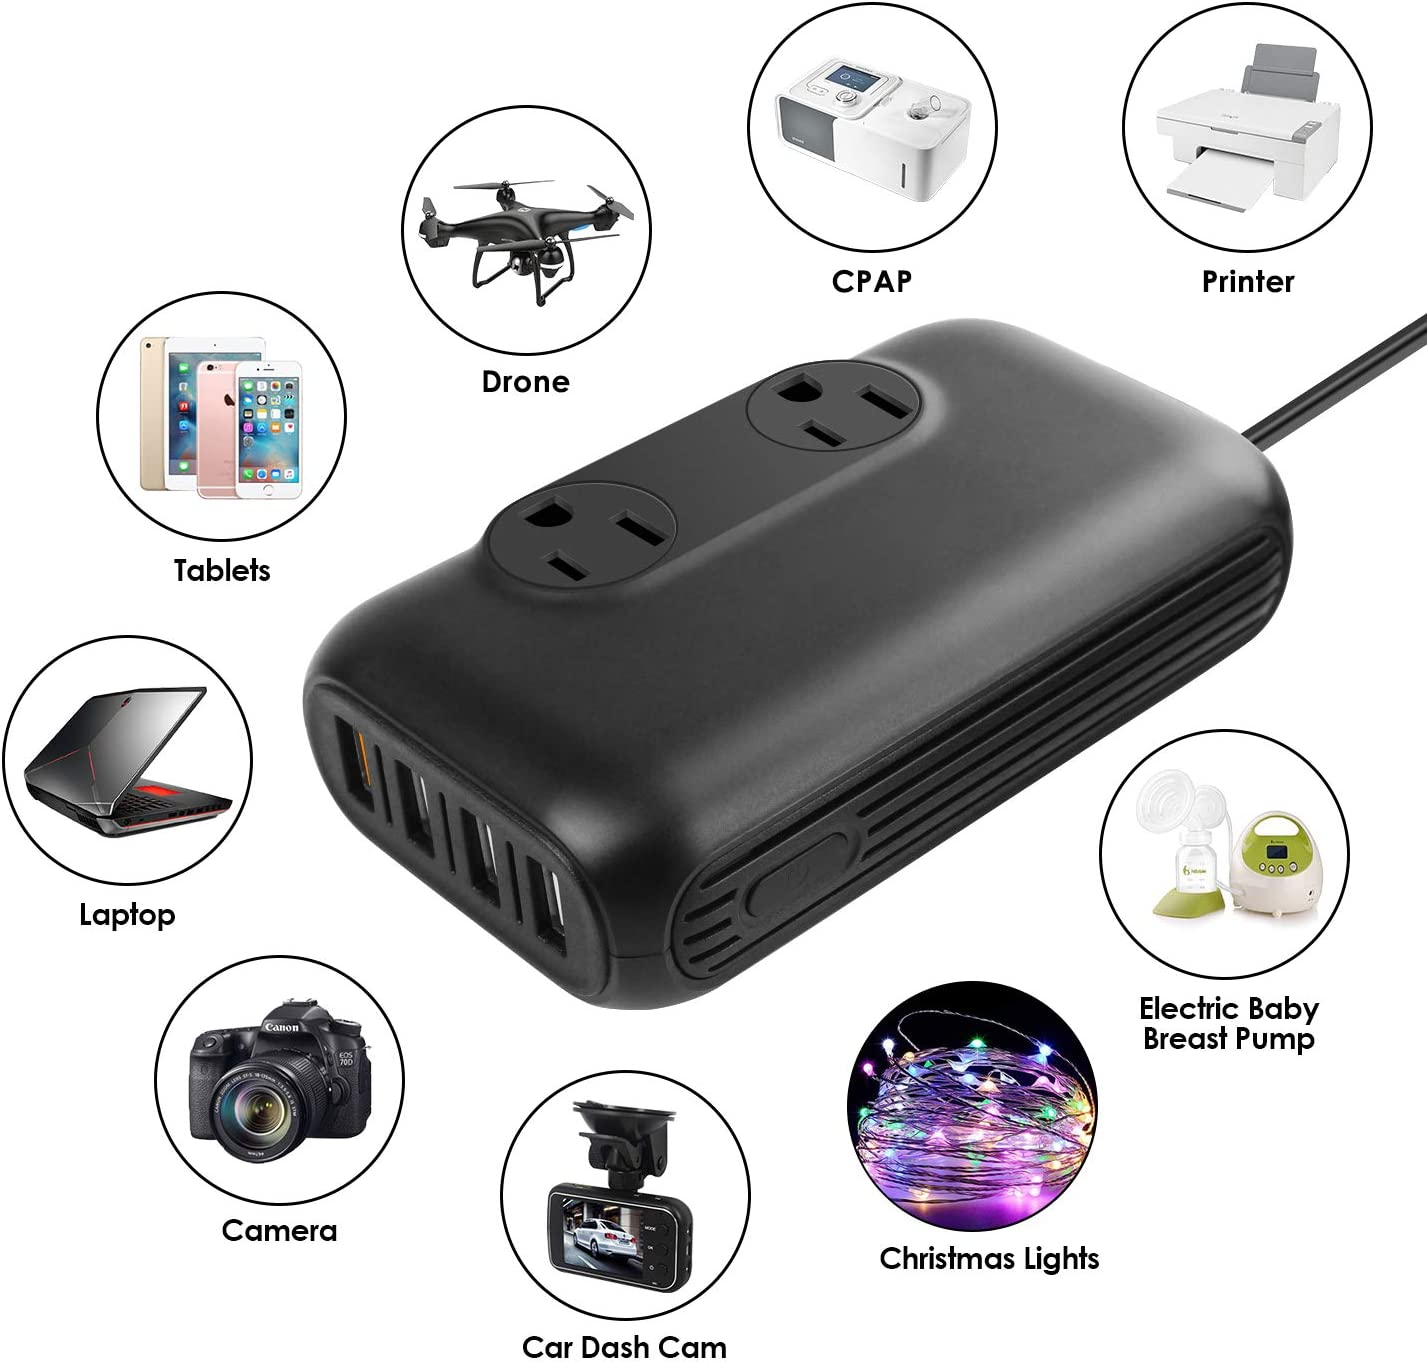 200W Car Power Inverter DC 12V to 110V AC Converter with 4 USB Ports Car Adapter Charger